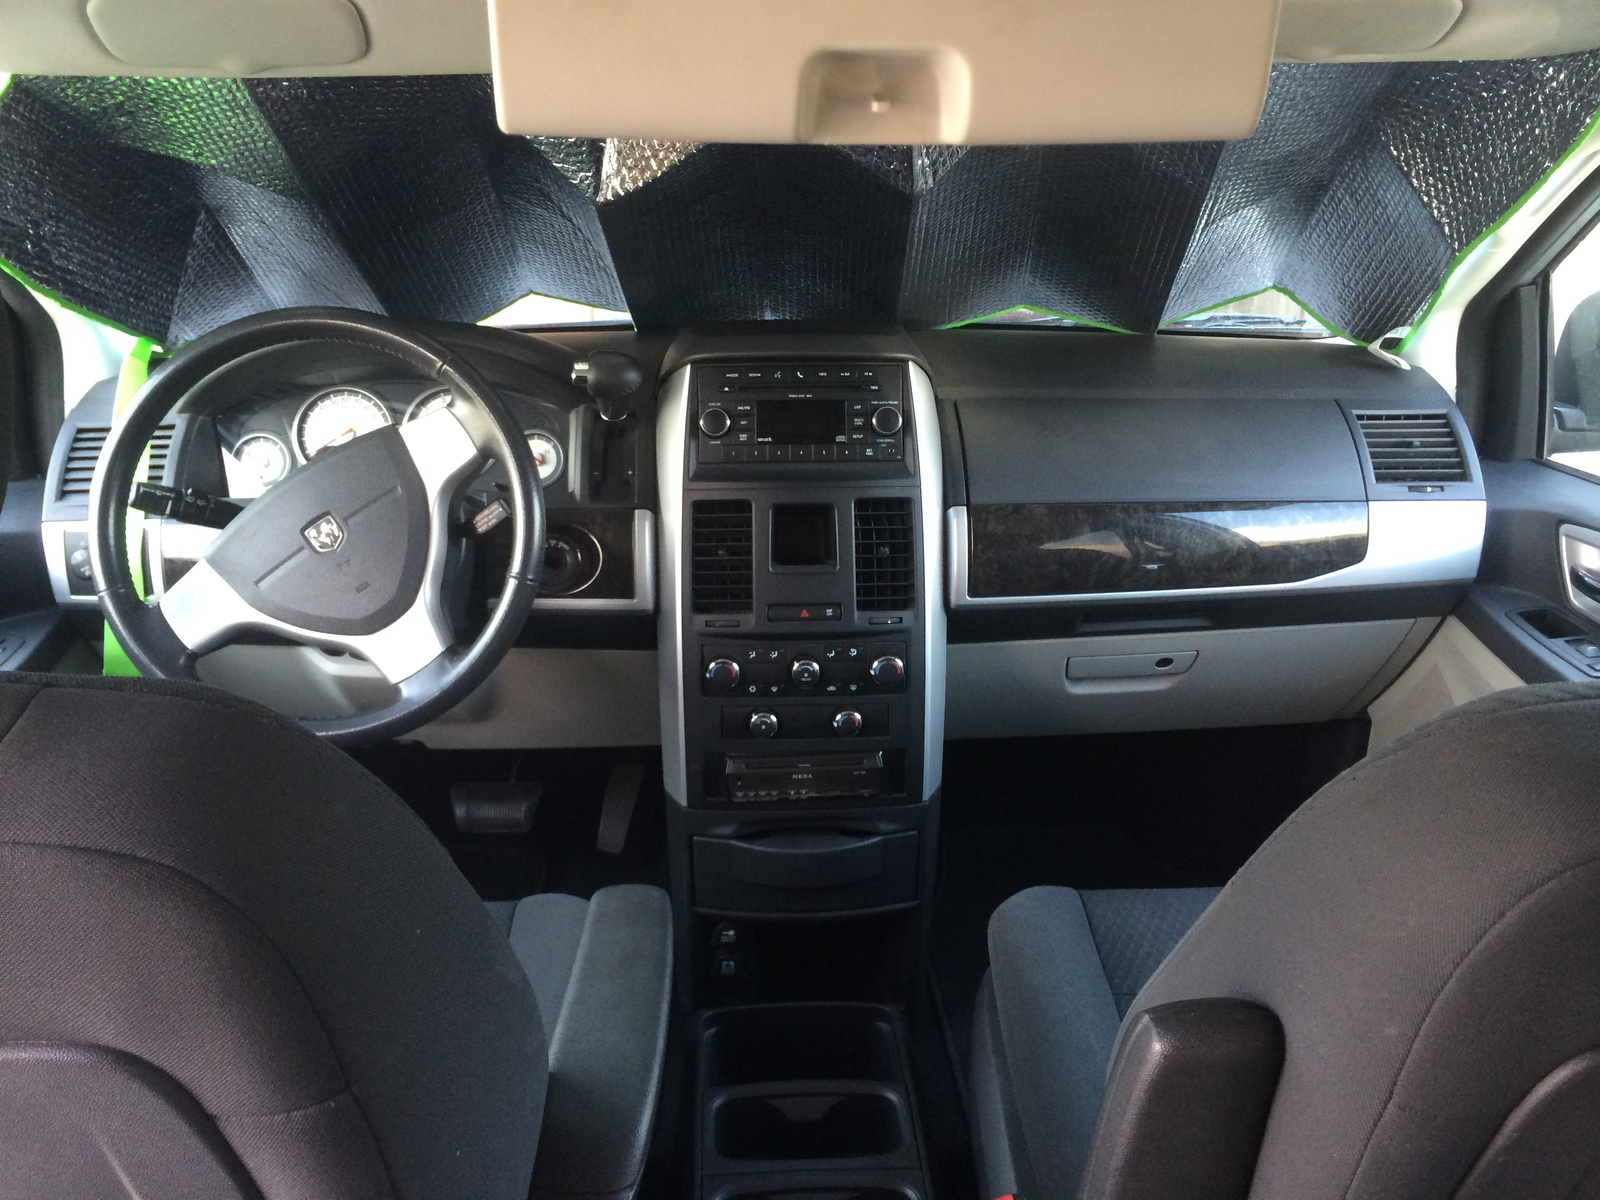 2010 Dodge Grand Caravan Sxt Interior Pictures To Pin On Pinterest Pinsdaddy